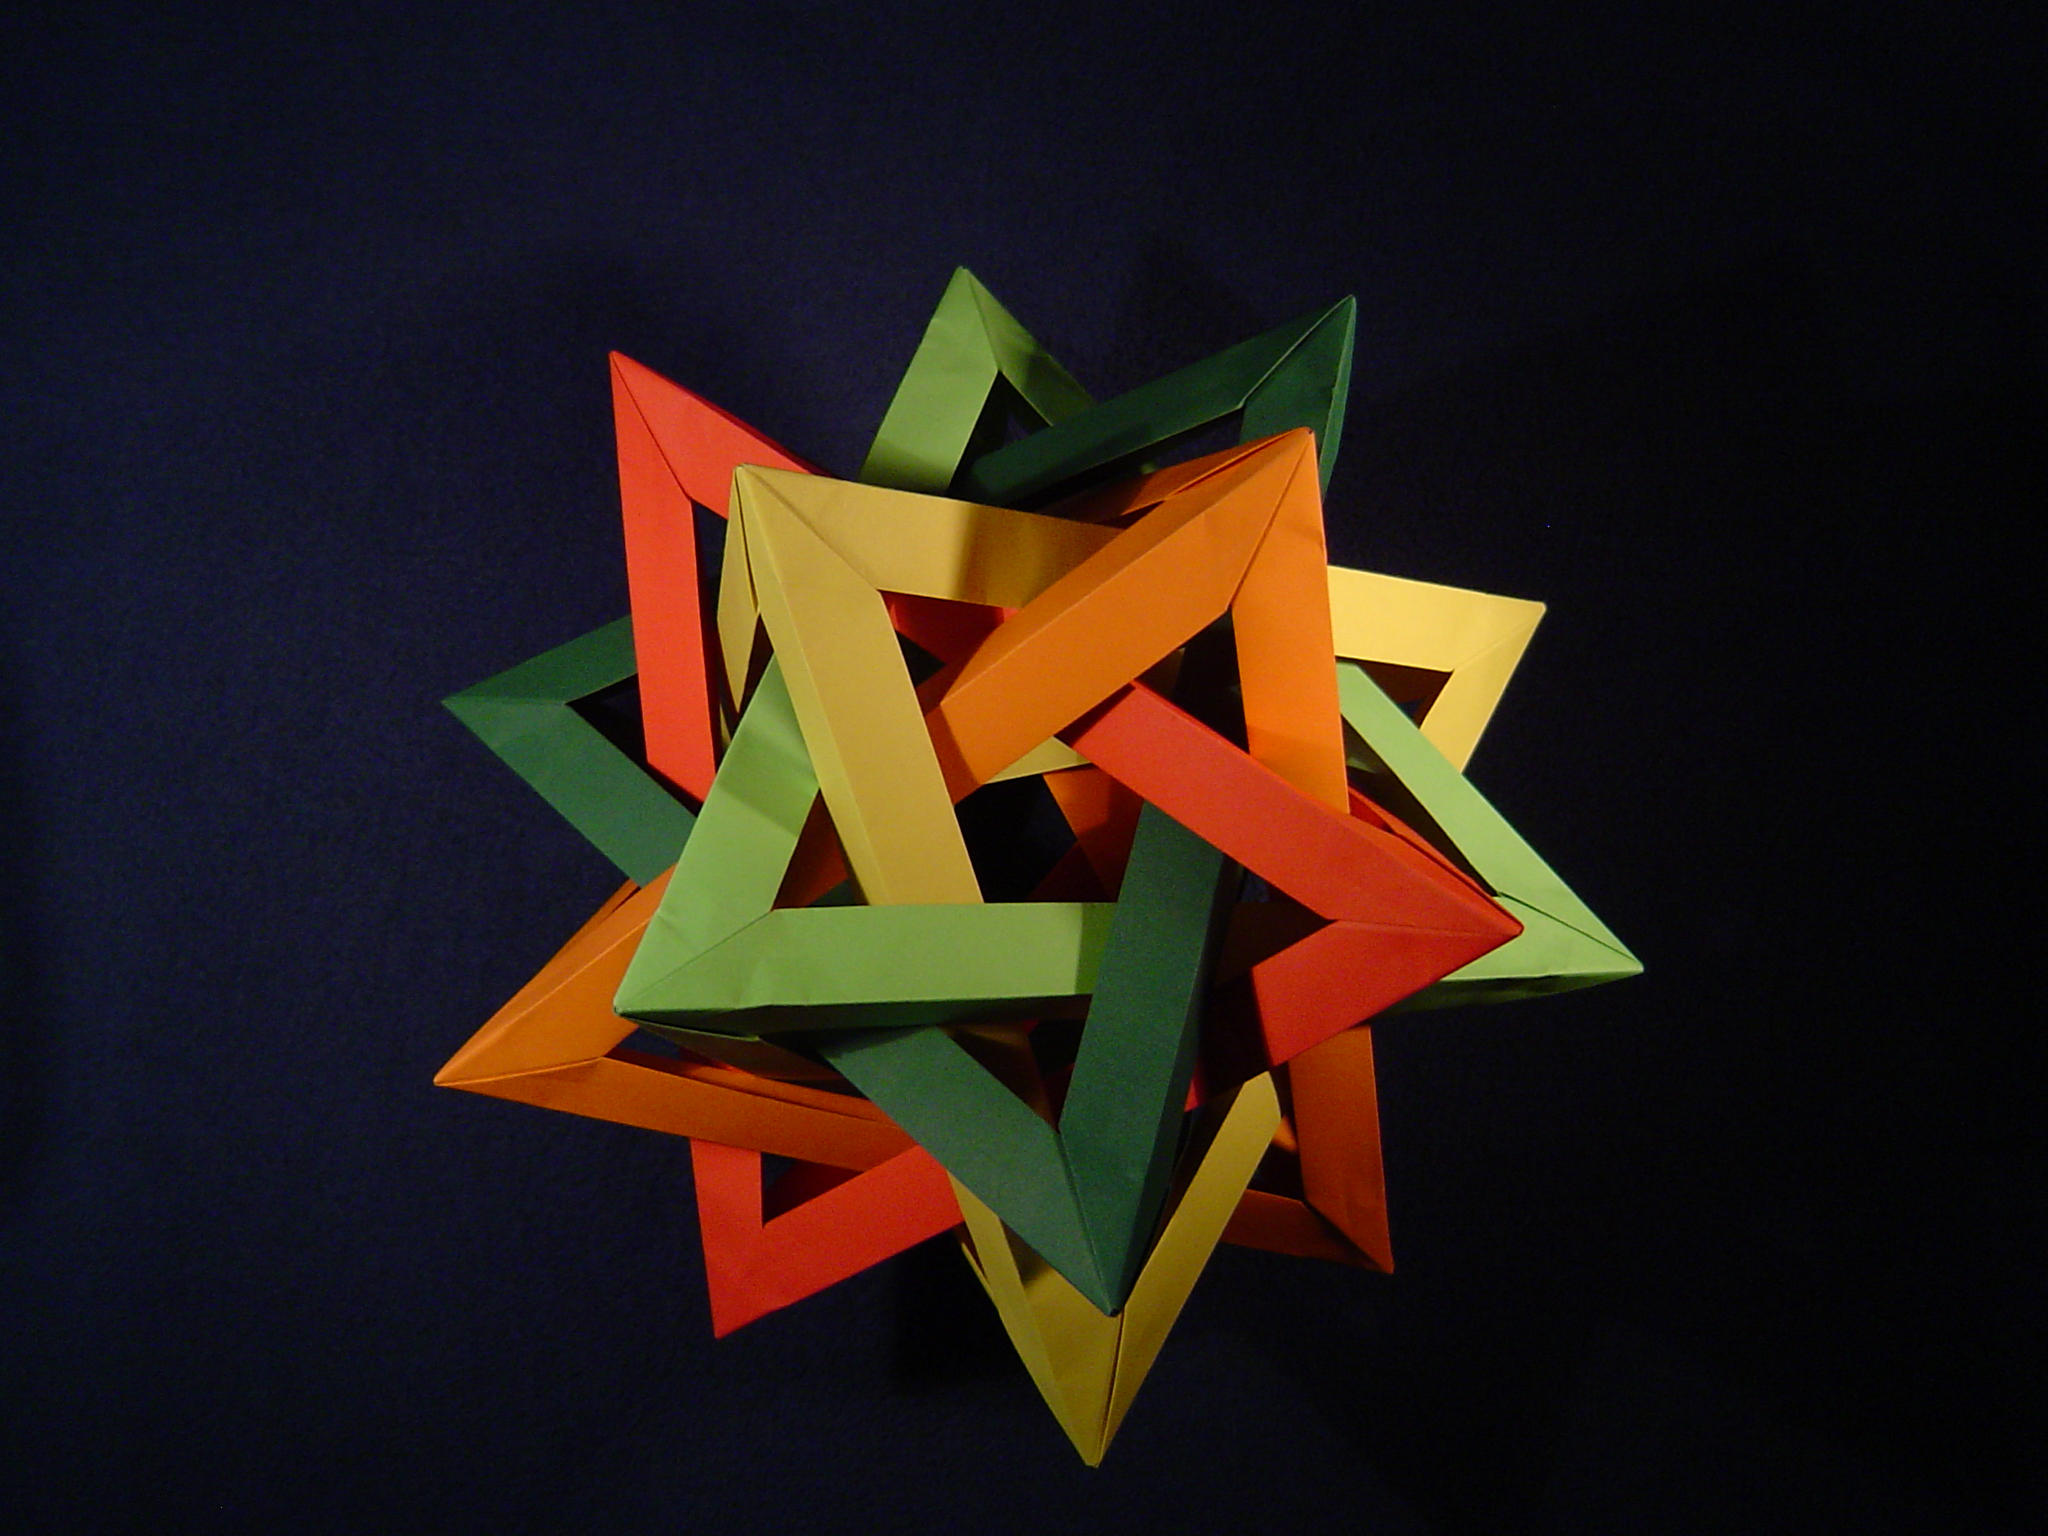 four intersected tetrahedra